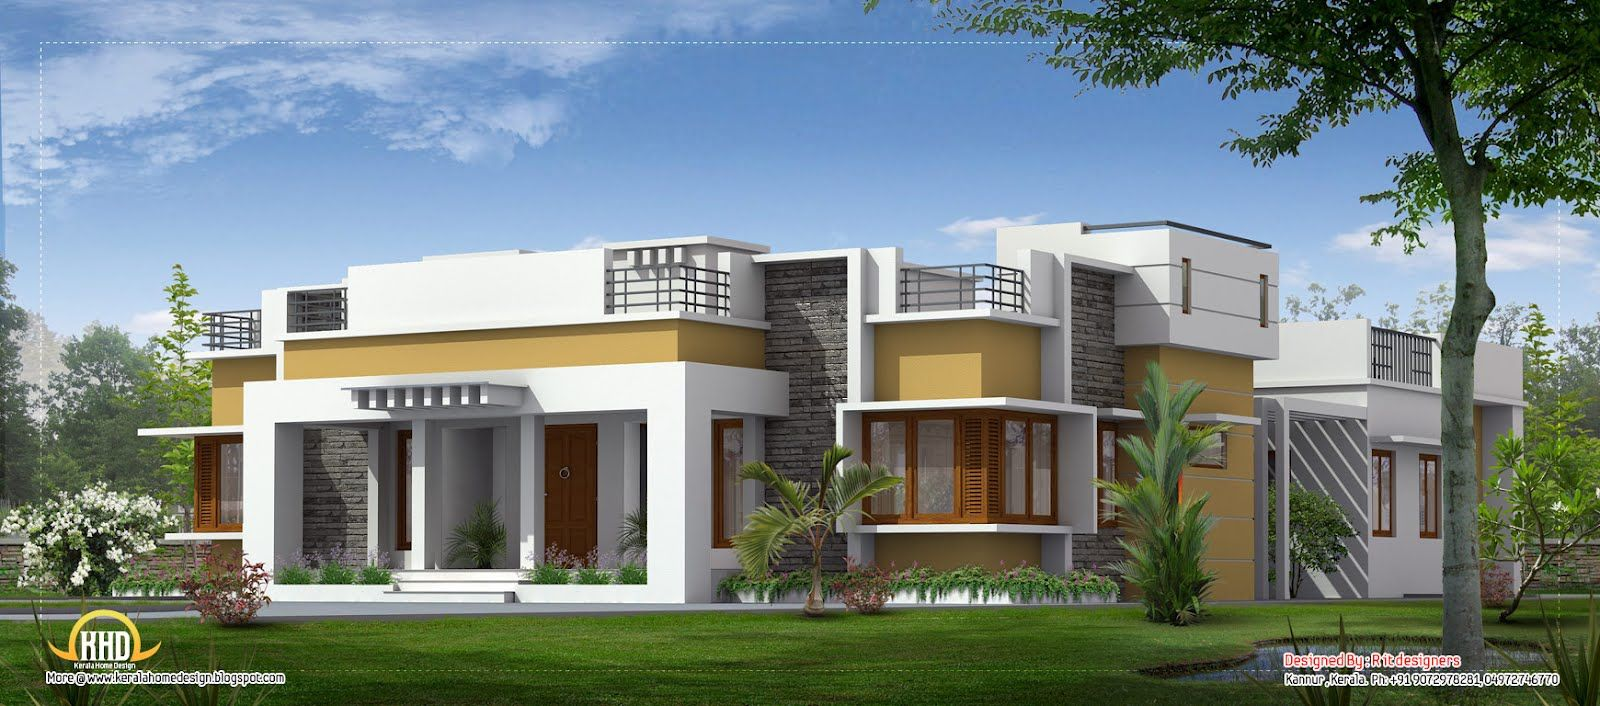 Single level designer home single floor house plans for Home designs single floor